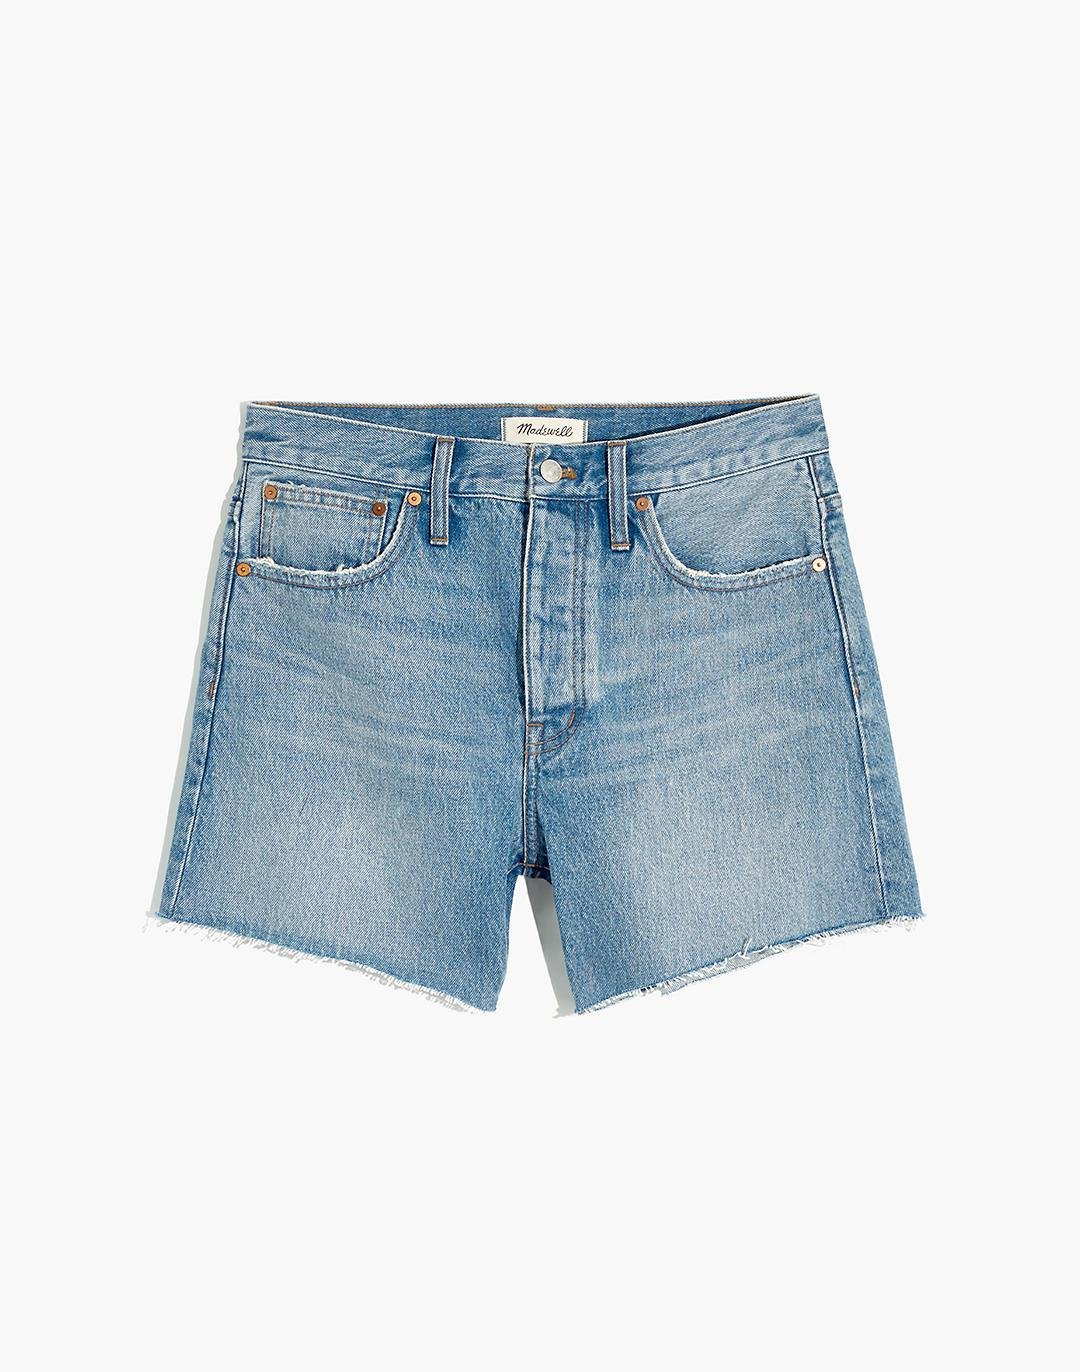 Relaxed Mid-Length Denim Shorts in Scottsburg Wash 3